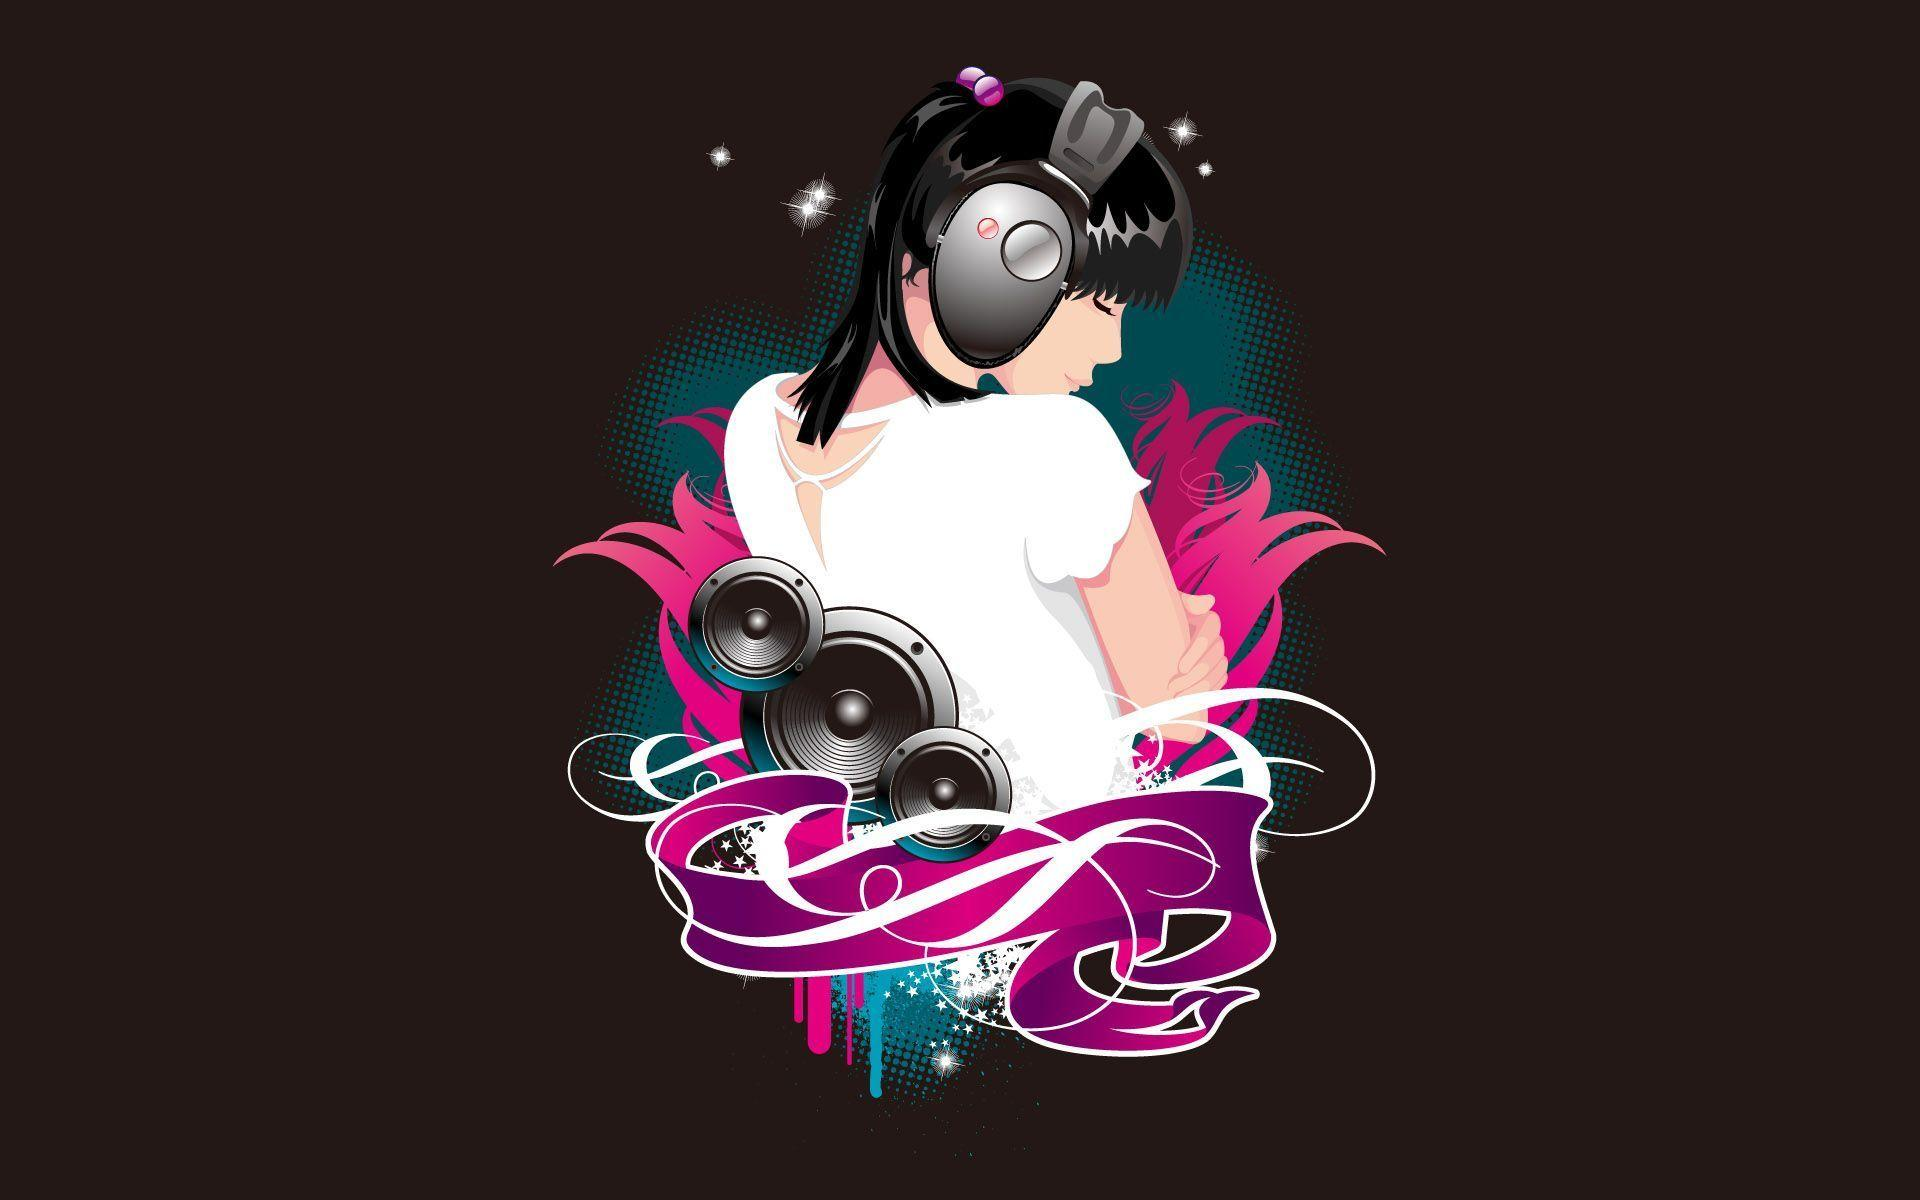 Cool Abstract Dj Music Wallpaper: Music Abstract Wallpapers